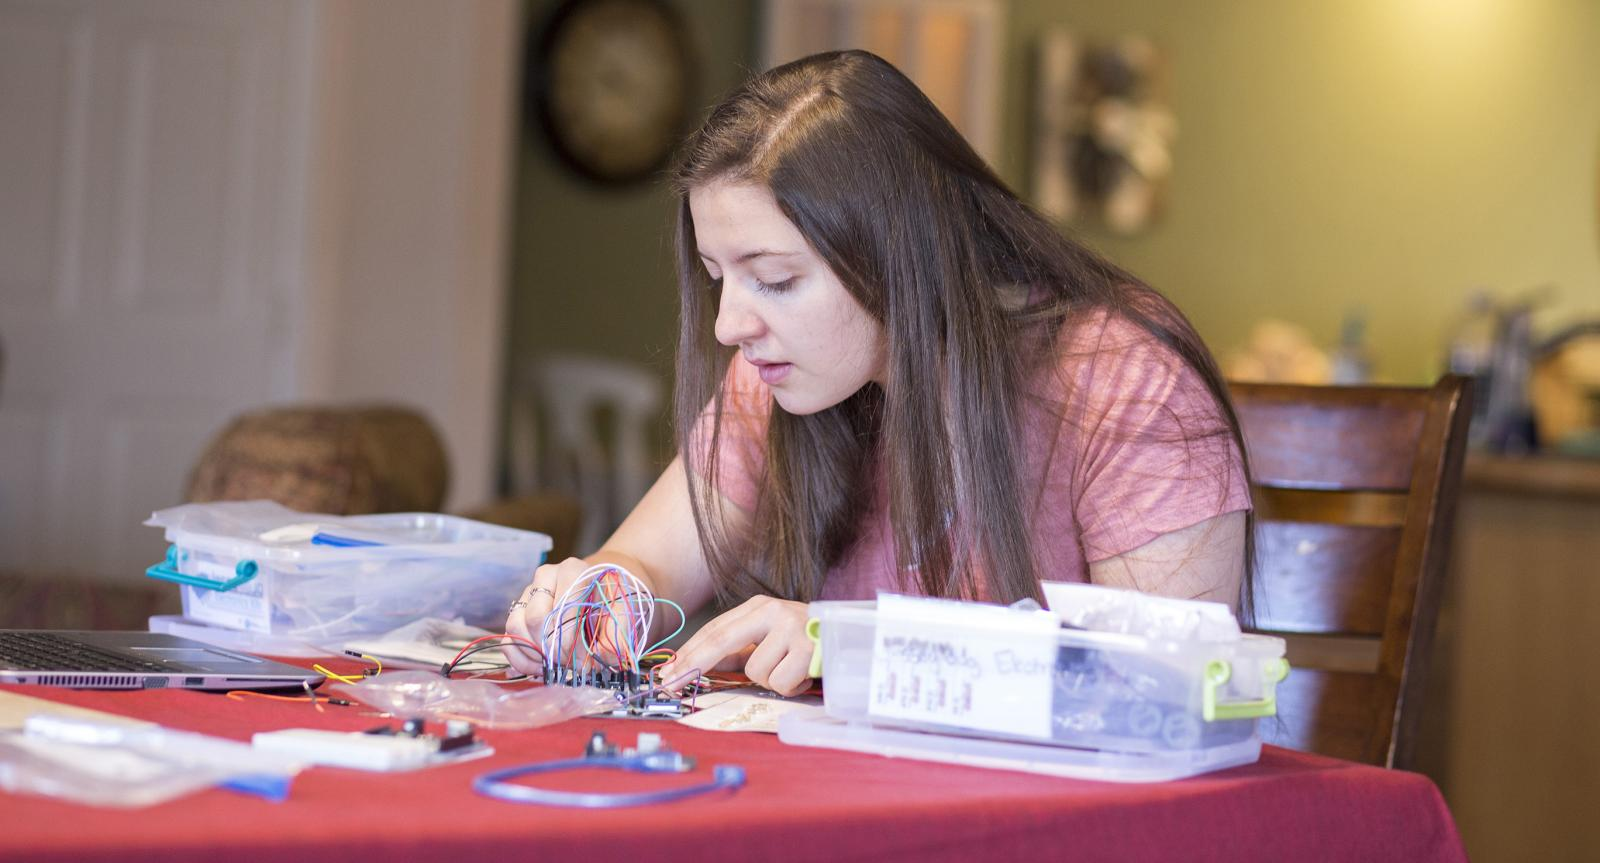 teen sits at kitchen table working on robotics project